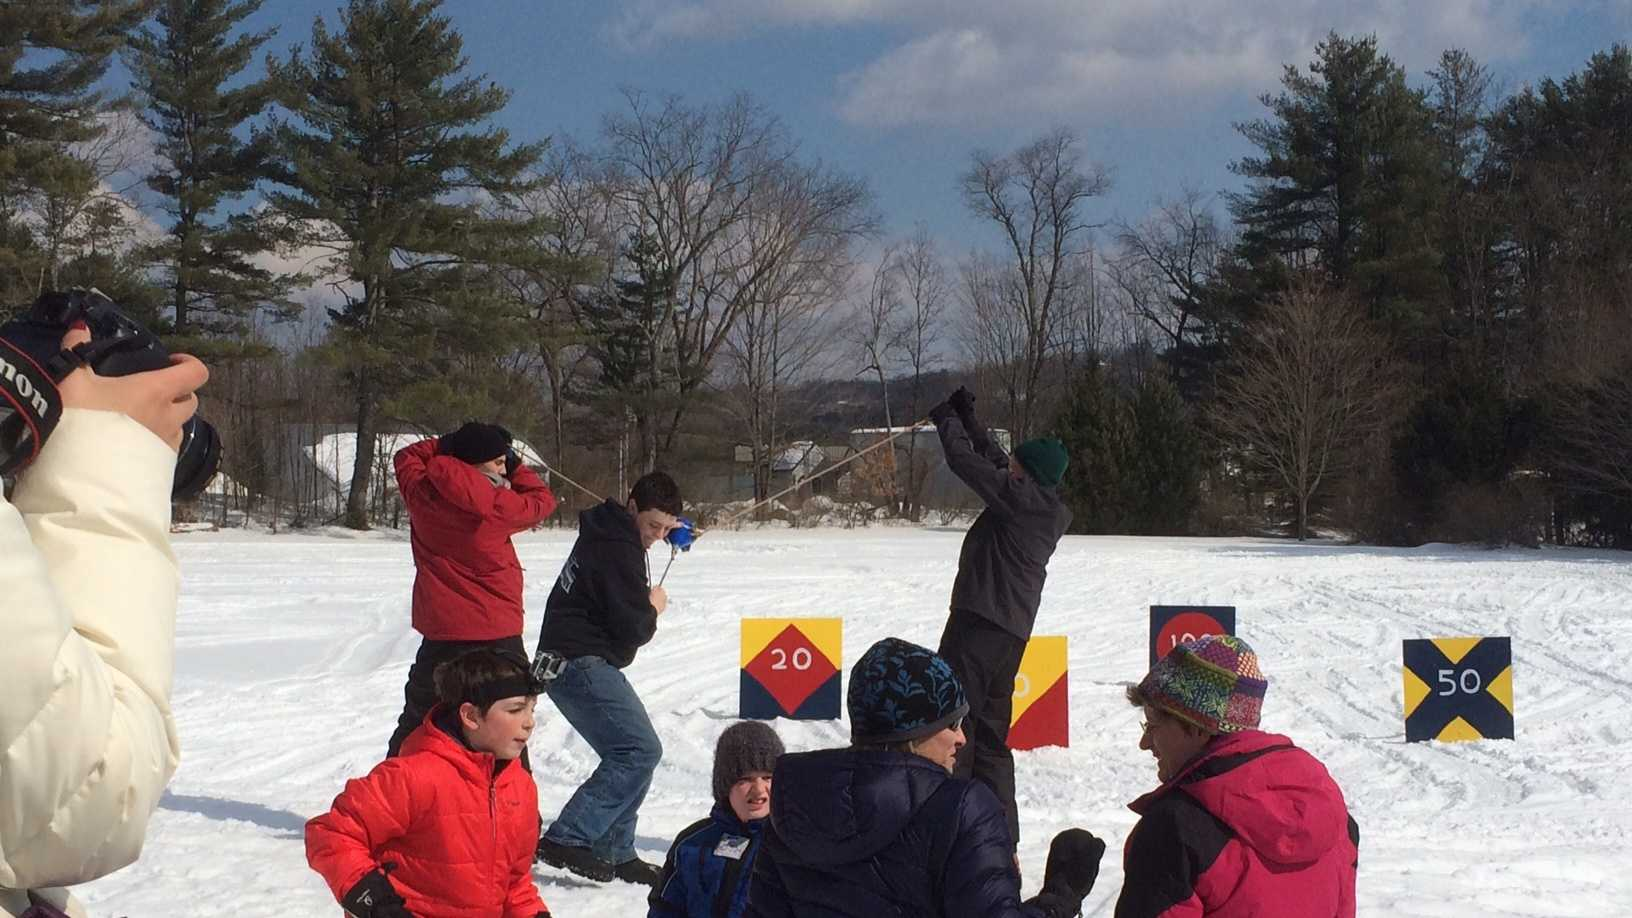 Winter adventurers launched snowballs with a slingshot in the third annual Funnelator Winter Festival Sunday.